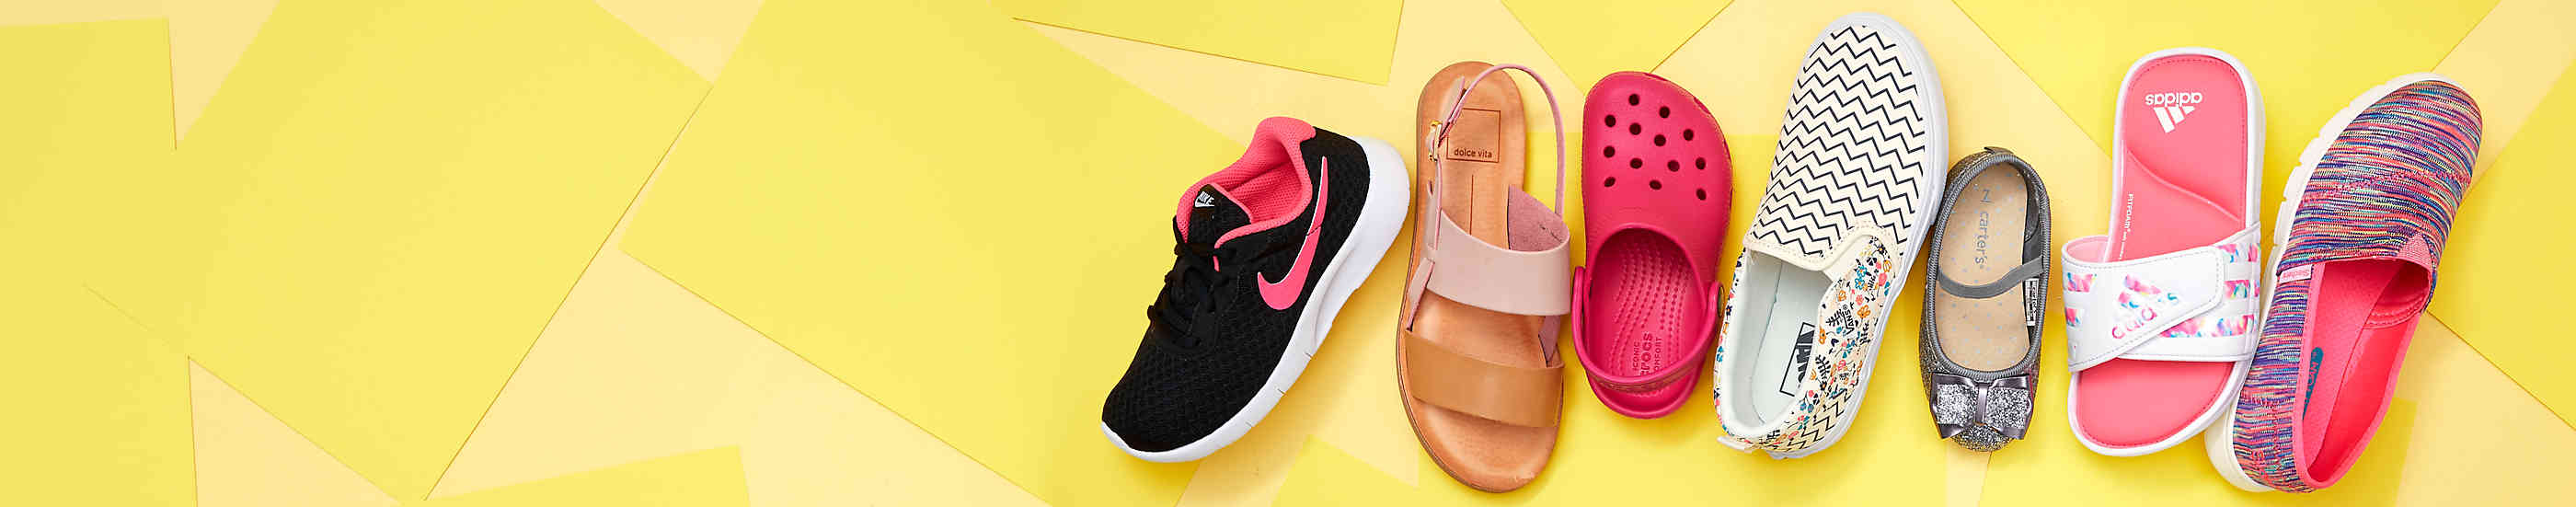 Girls Shoes Sandals Sneakers Boots And Dress Shoes Dsw